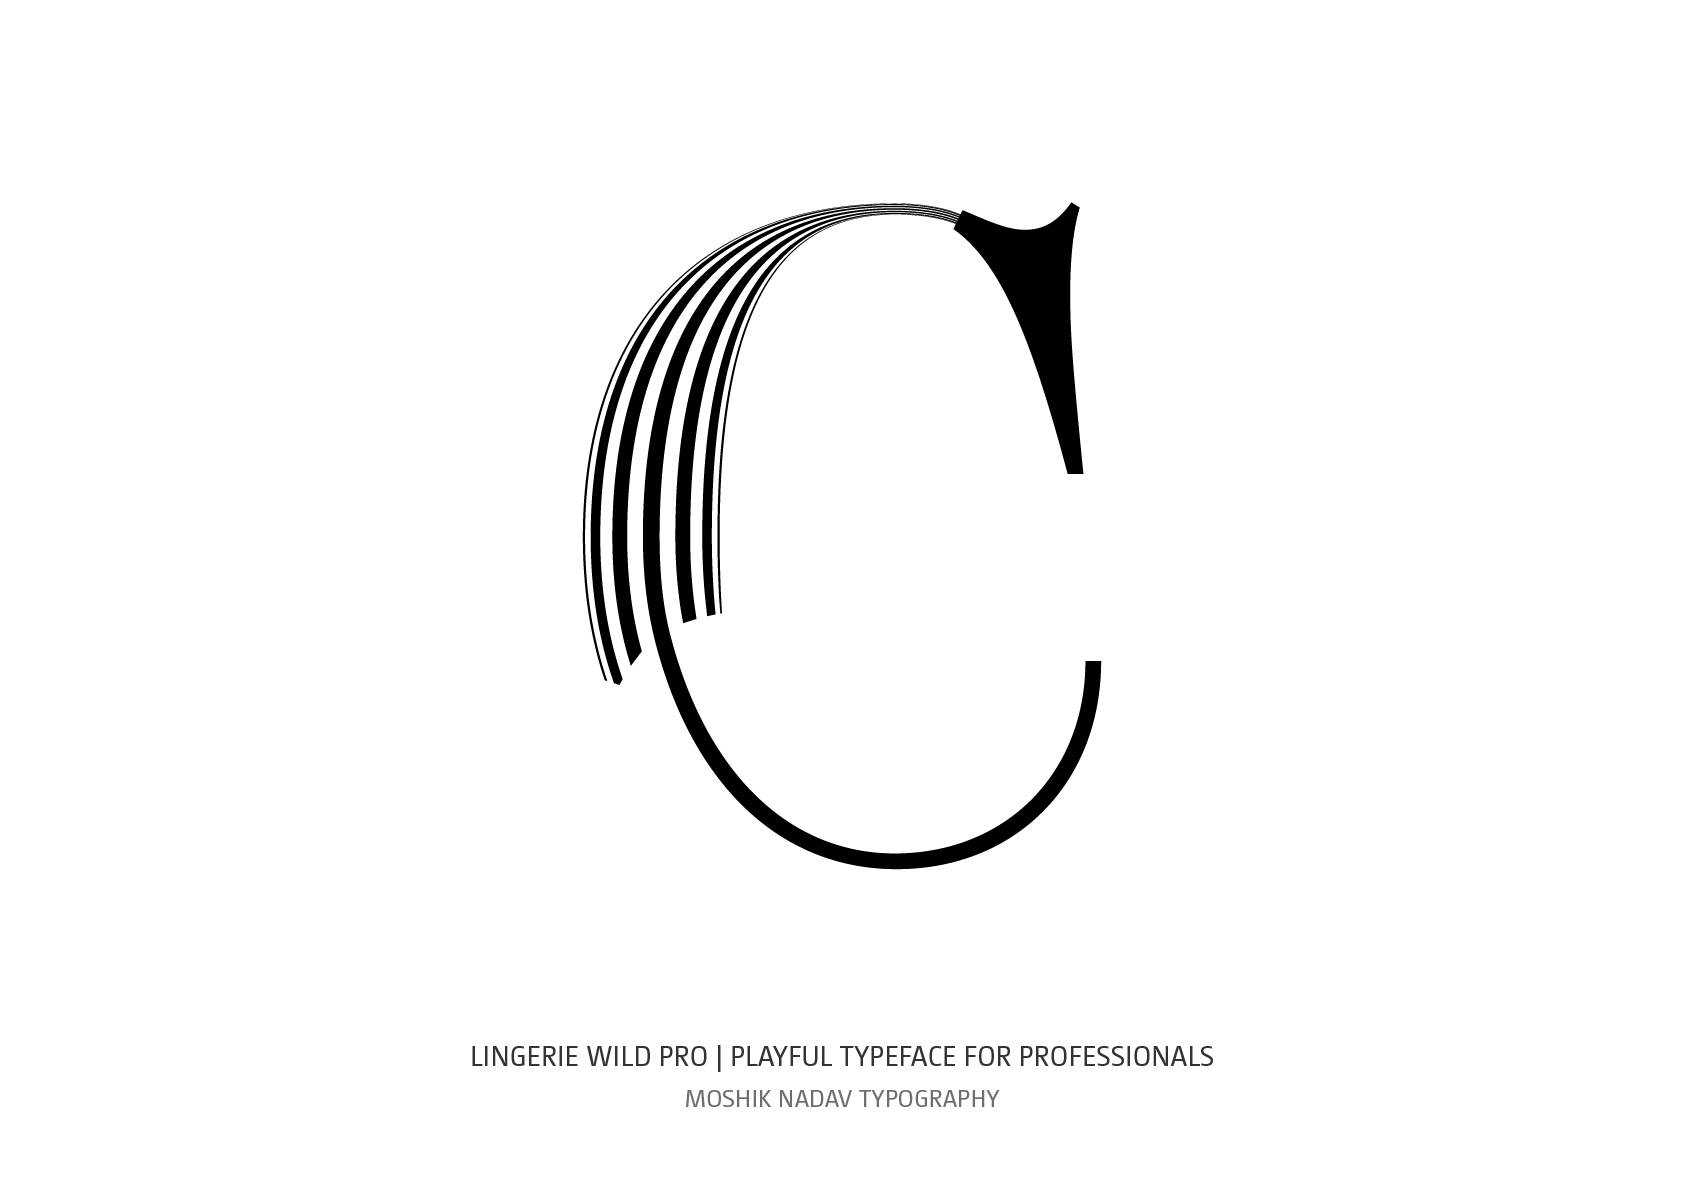 Super sexy uppercase C designed by Moshik Nadav Fashion Typography based in NYC